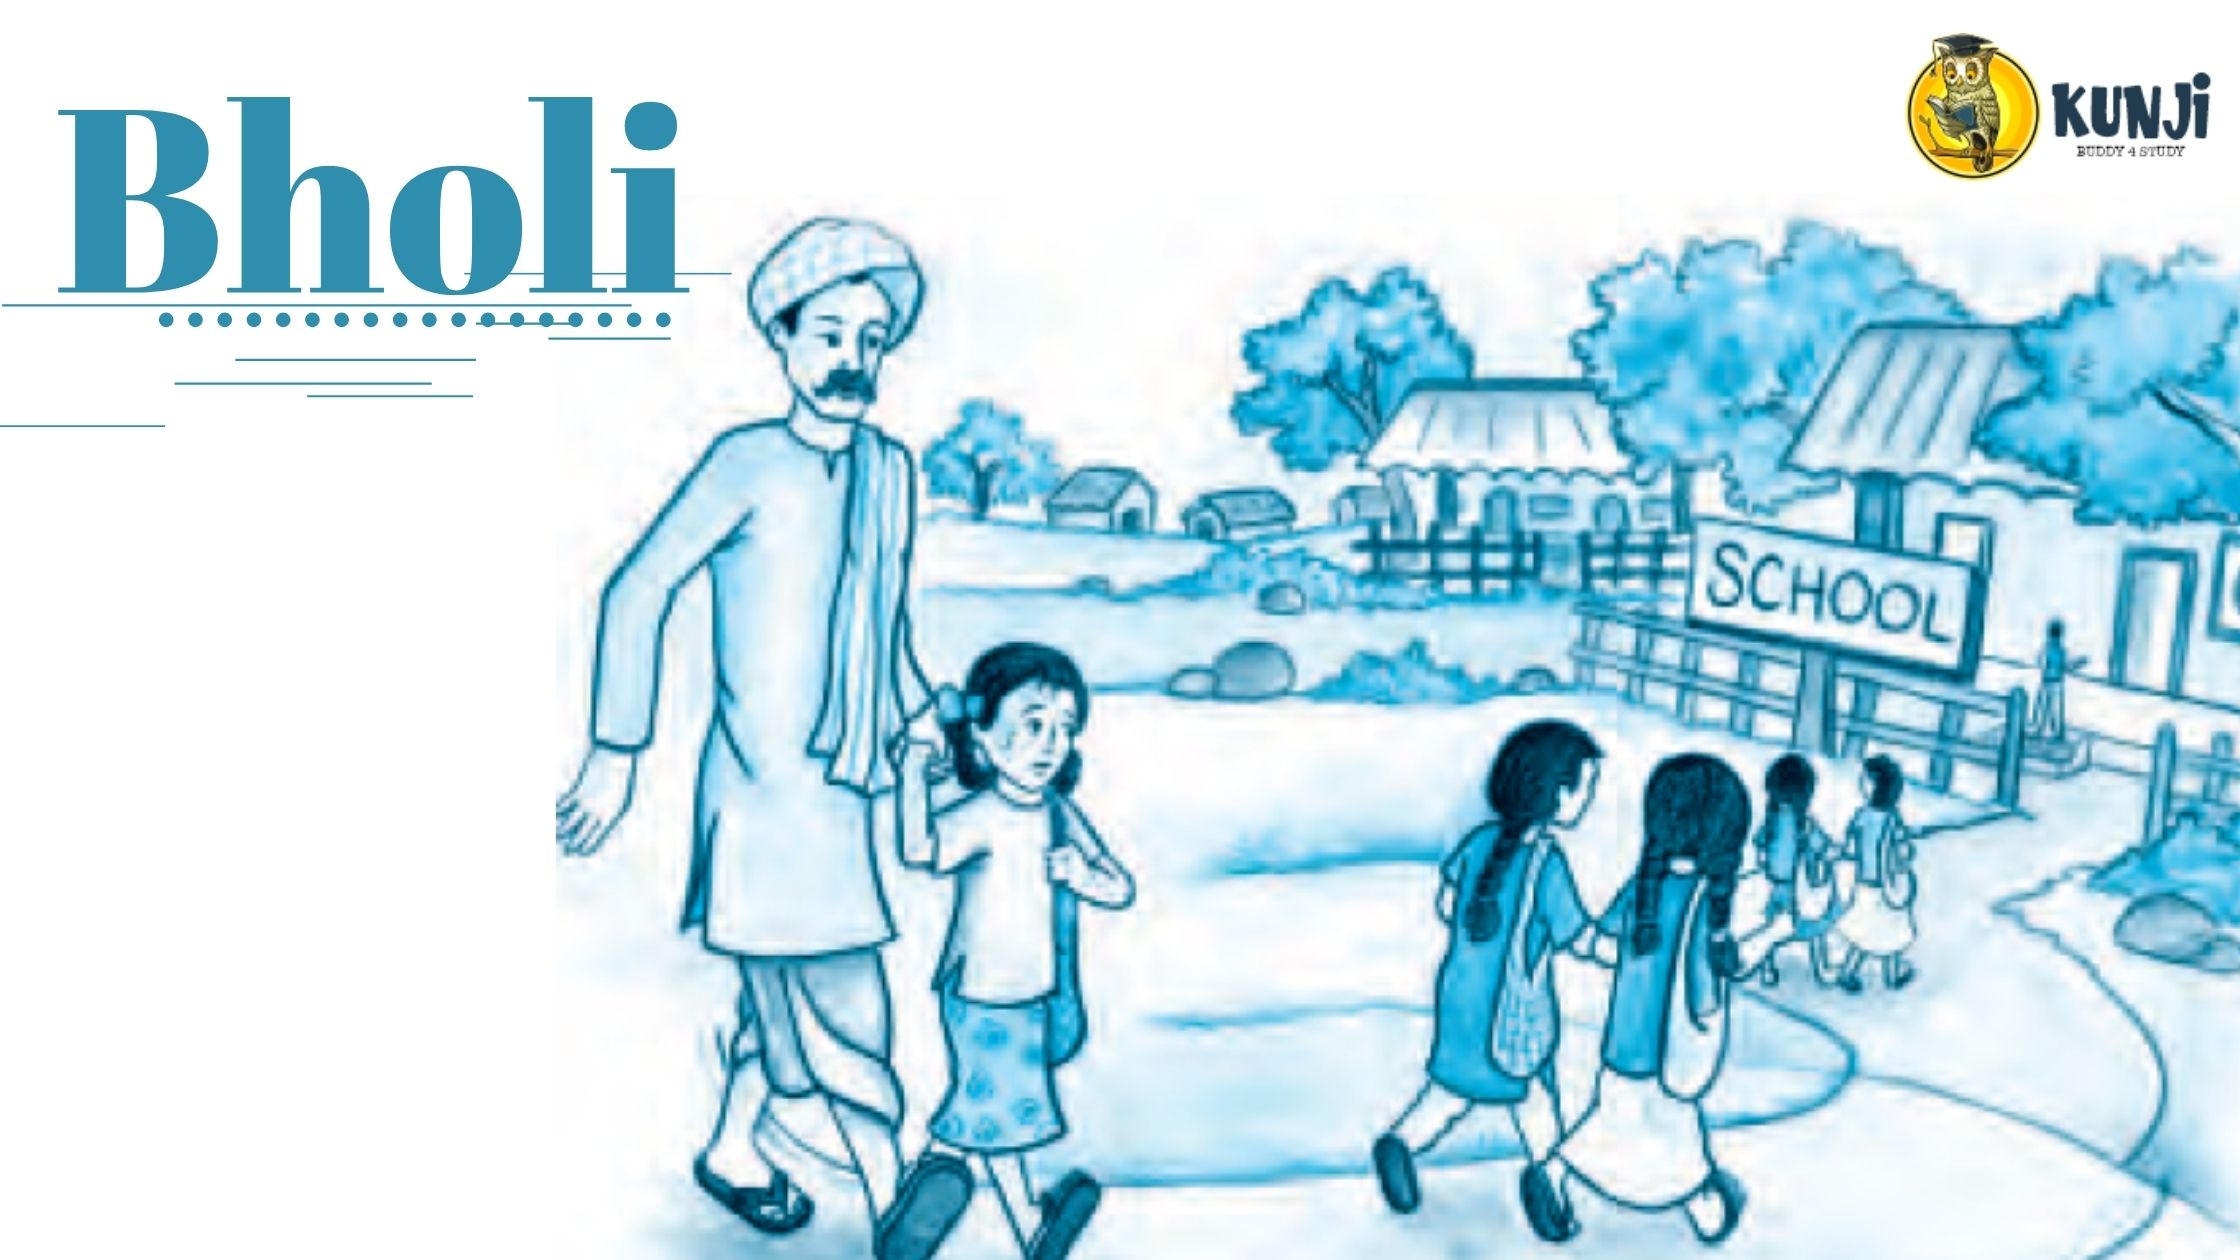 NCERT Solutions for 10th Class English Chapter 9 Bholi